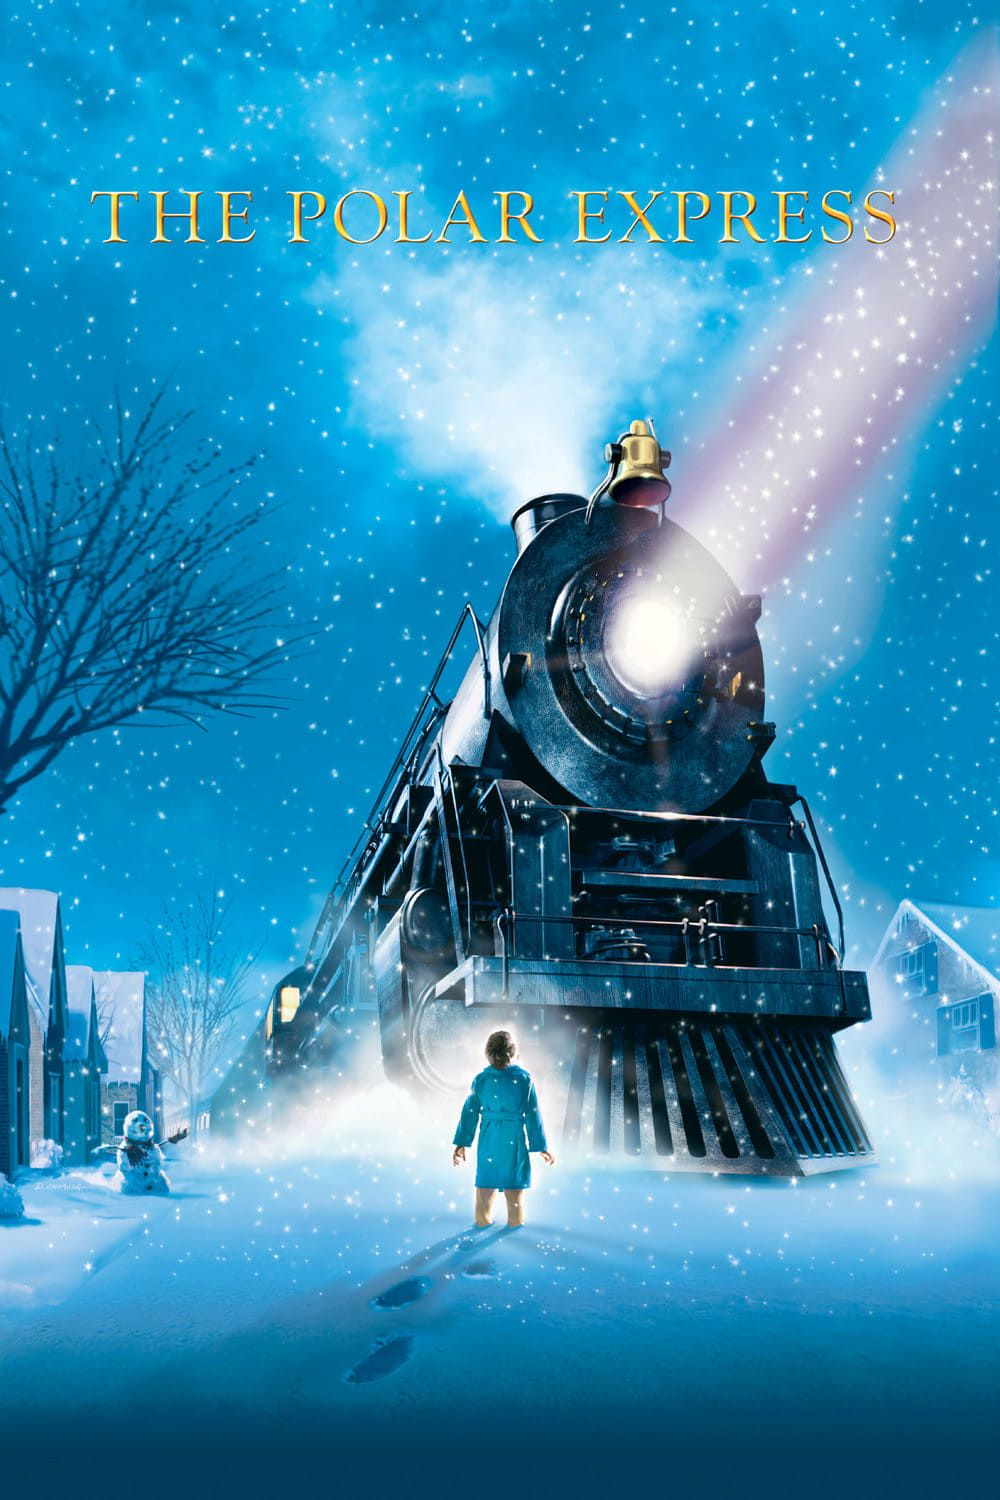 The polar express movie: watch stream online.